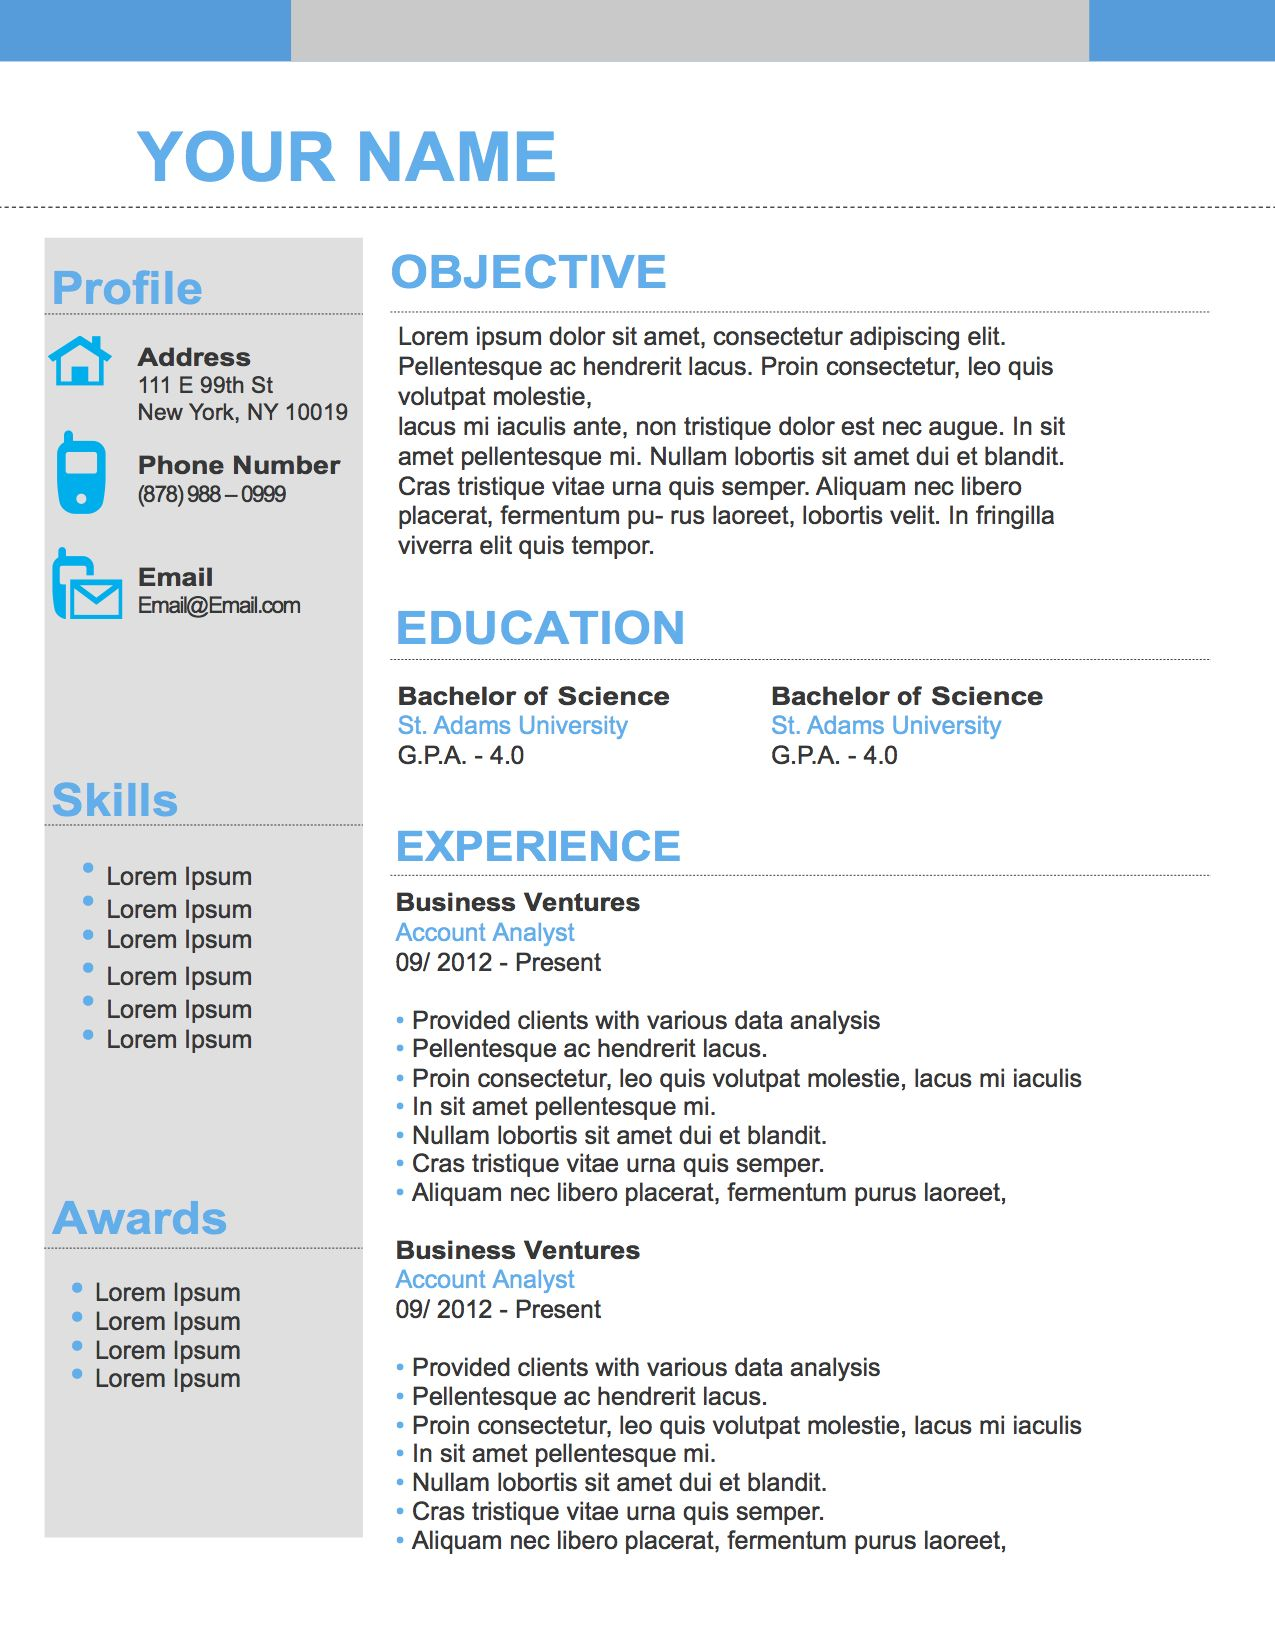 Number One Resume Template Resume template, First resume